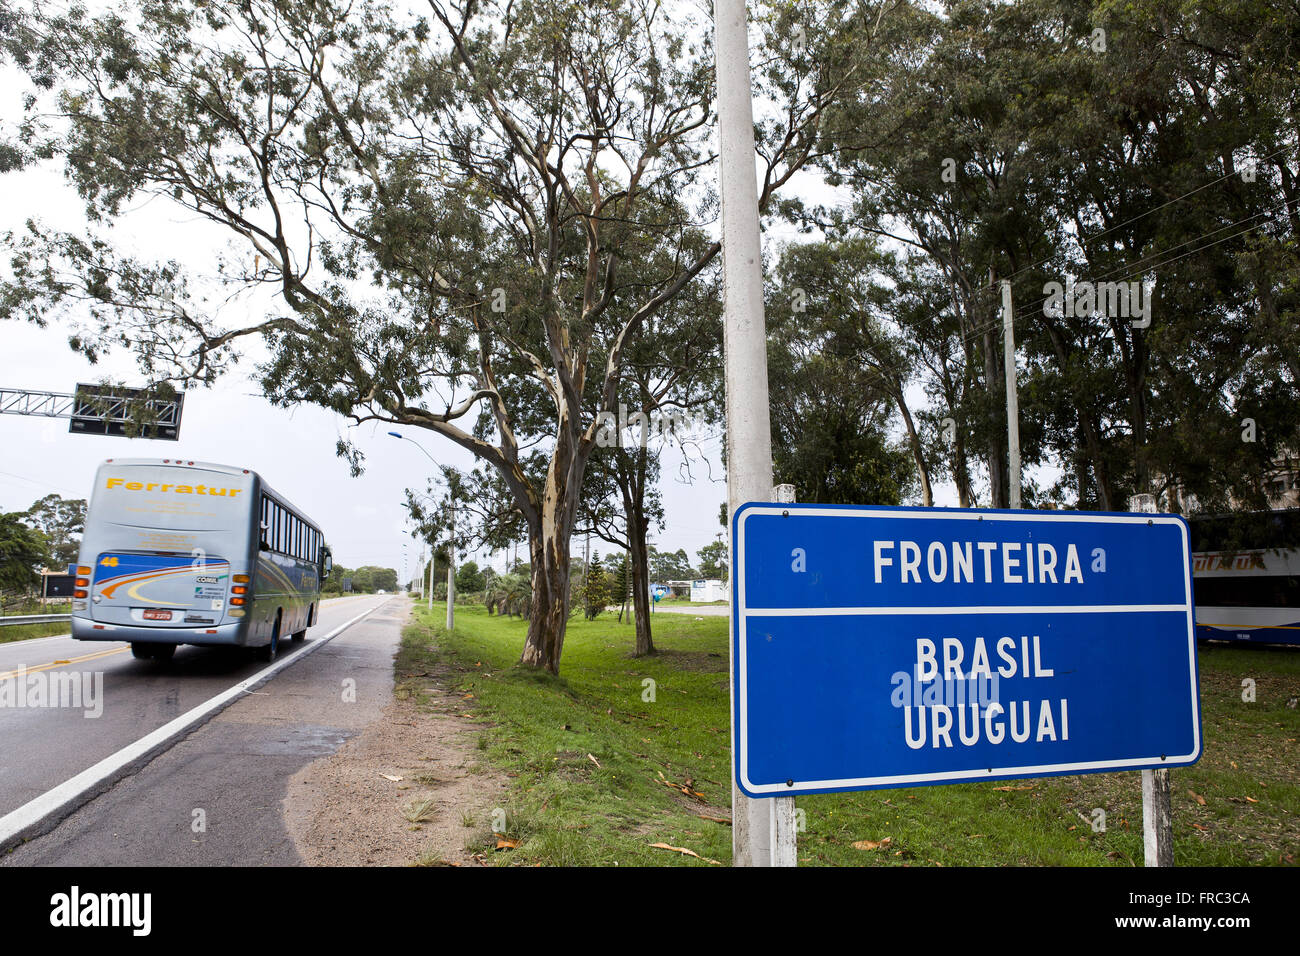 Plate indicating the border between Brazil and Uruguay in the roadside - Stock Image